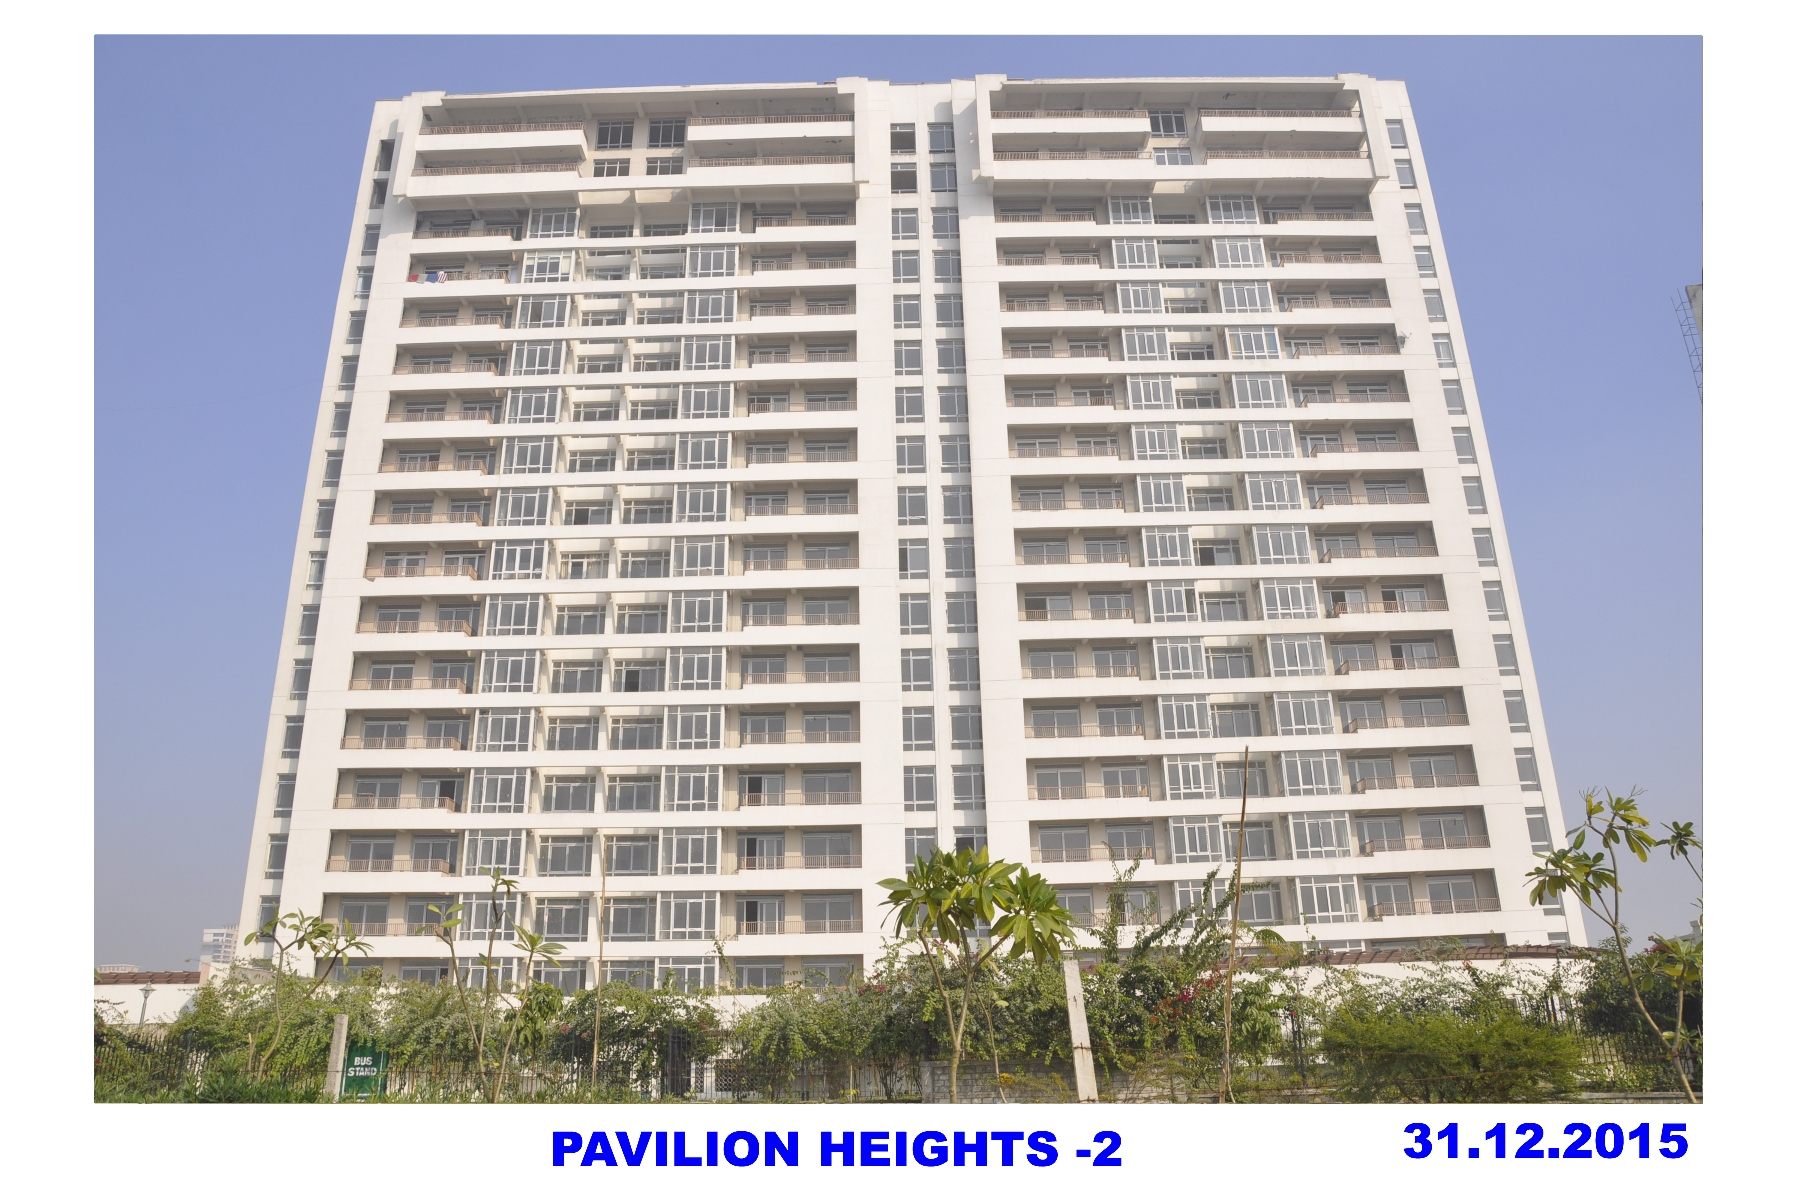 Pavilion Height Tower - 2